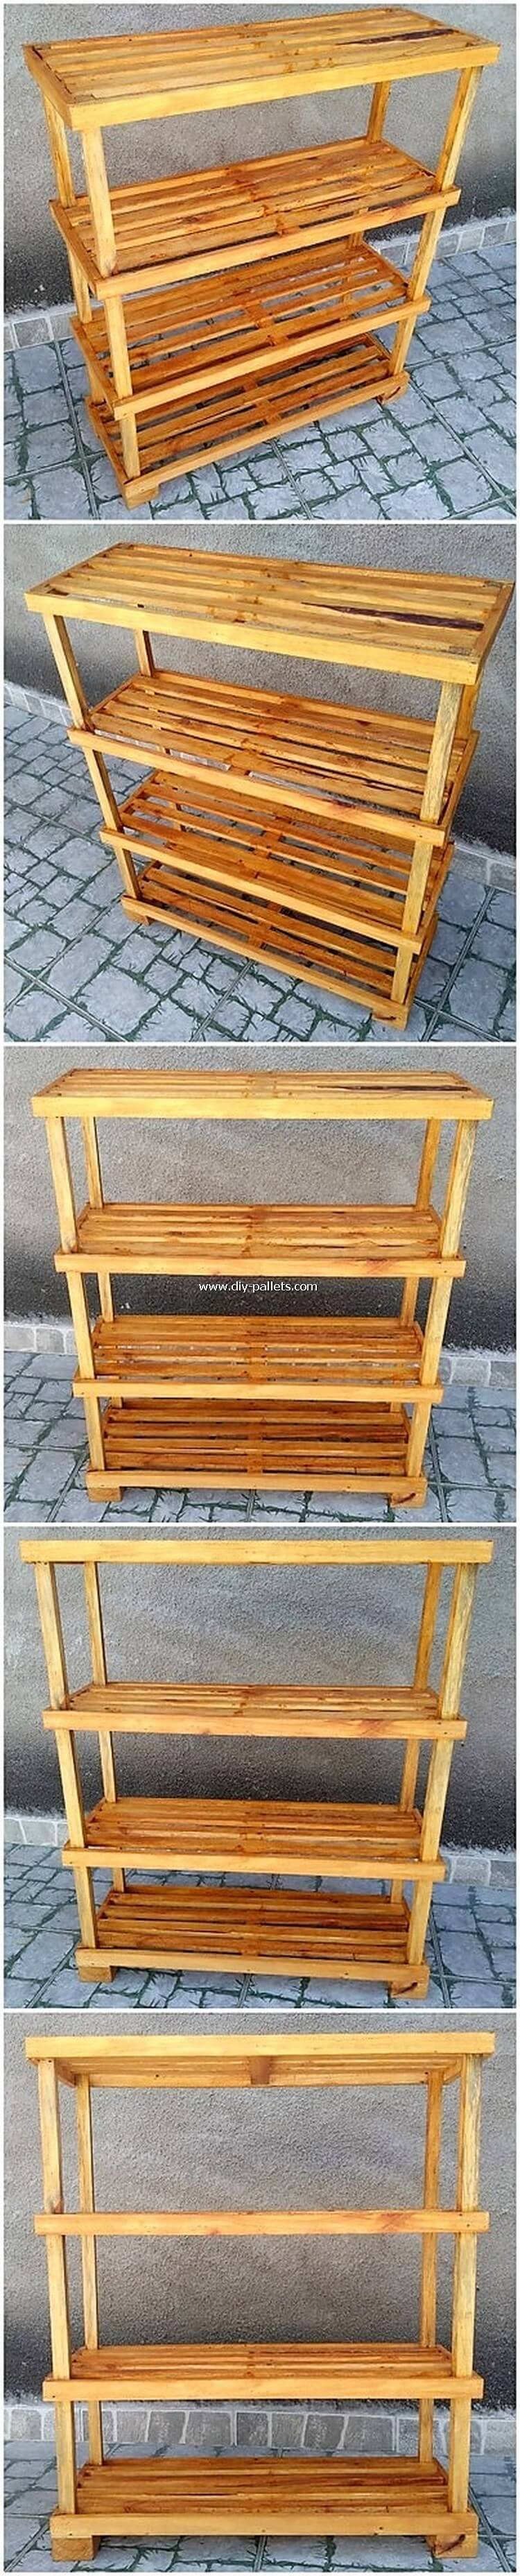 Pallet Shelving Unit or Table